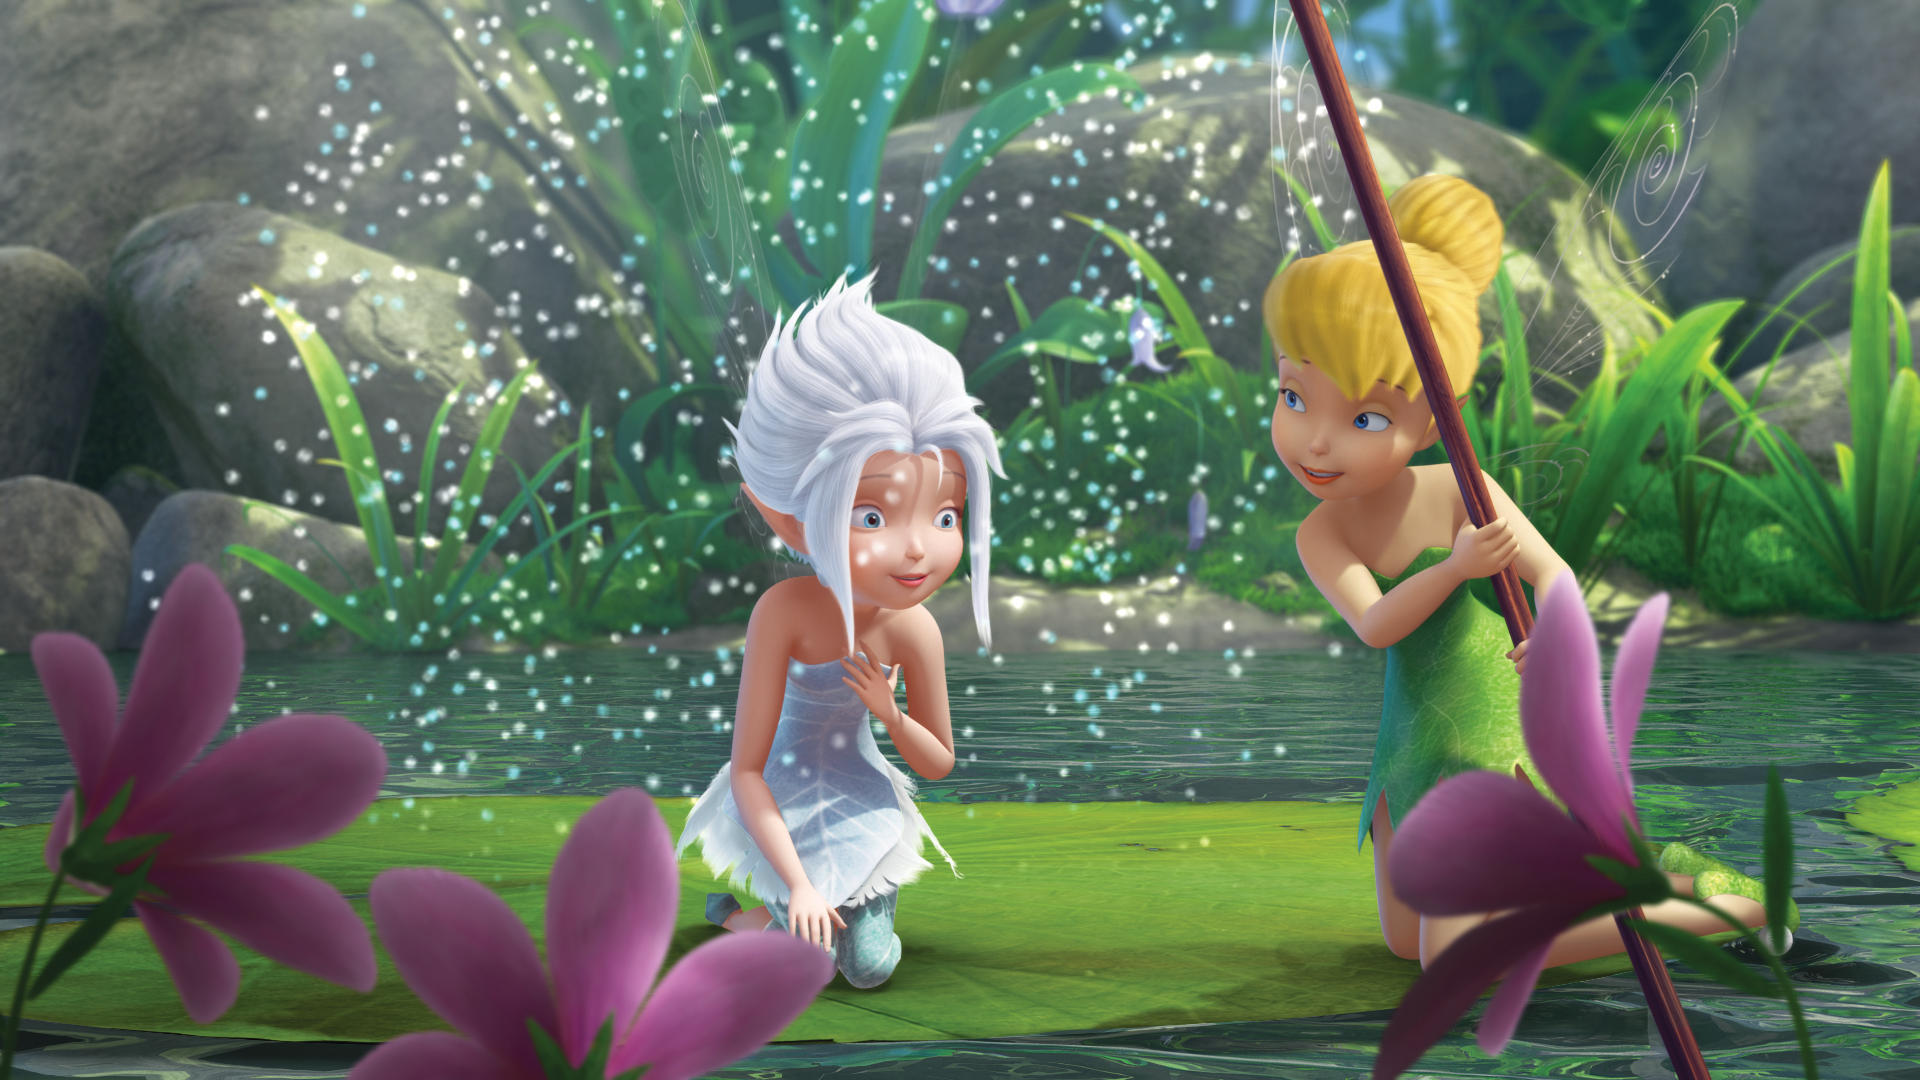 http://images6.fanpop.com/image/photos/32300000/TinkerBell-PeriWinkle-tinkerbell-and-the-mysterious-winter-woods-32303441-1920-1080.jpg